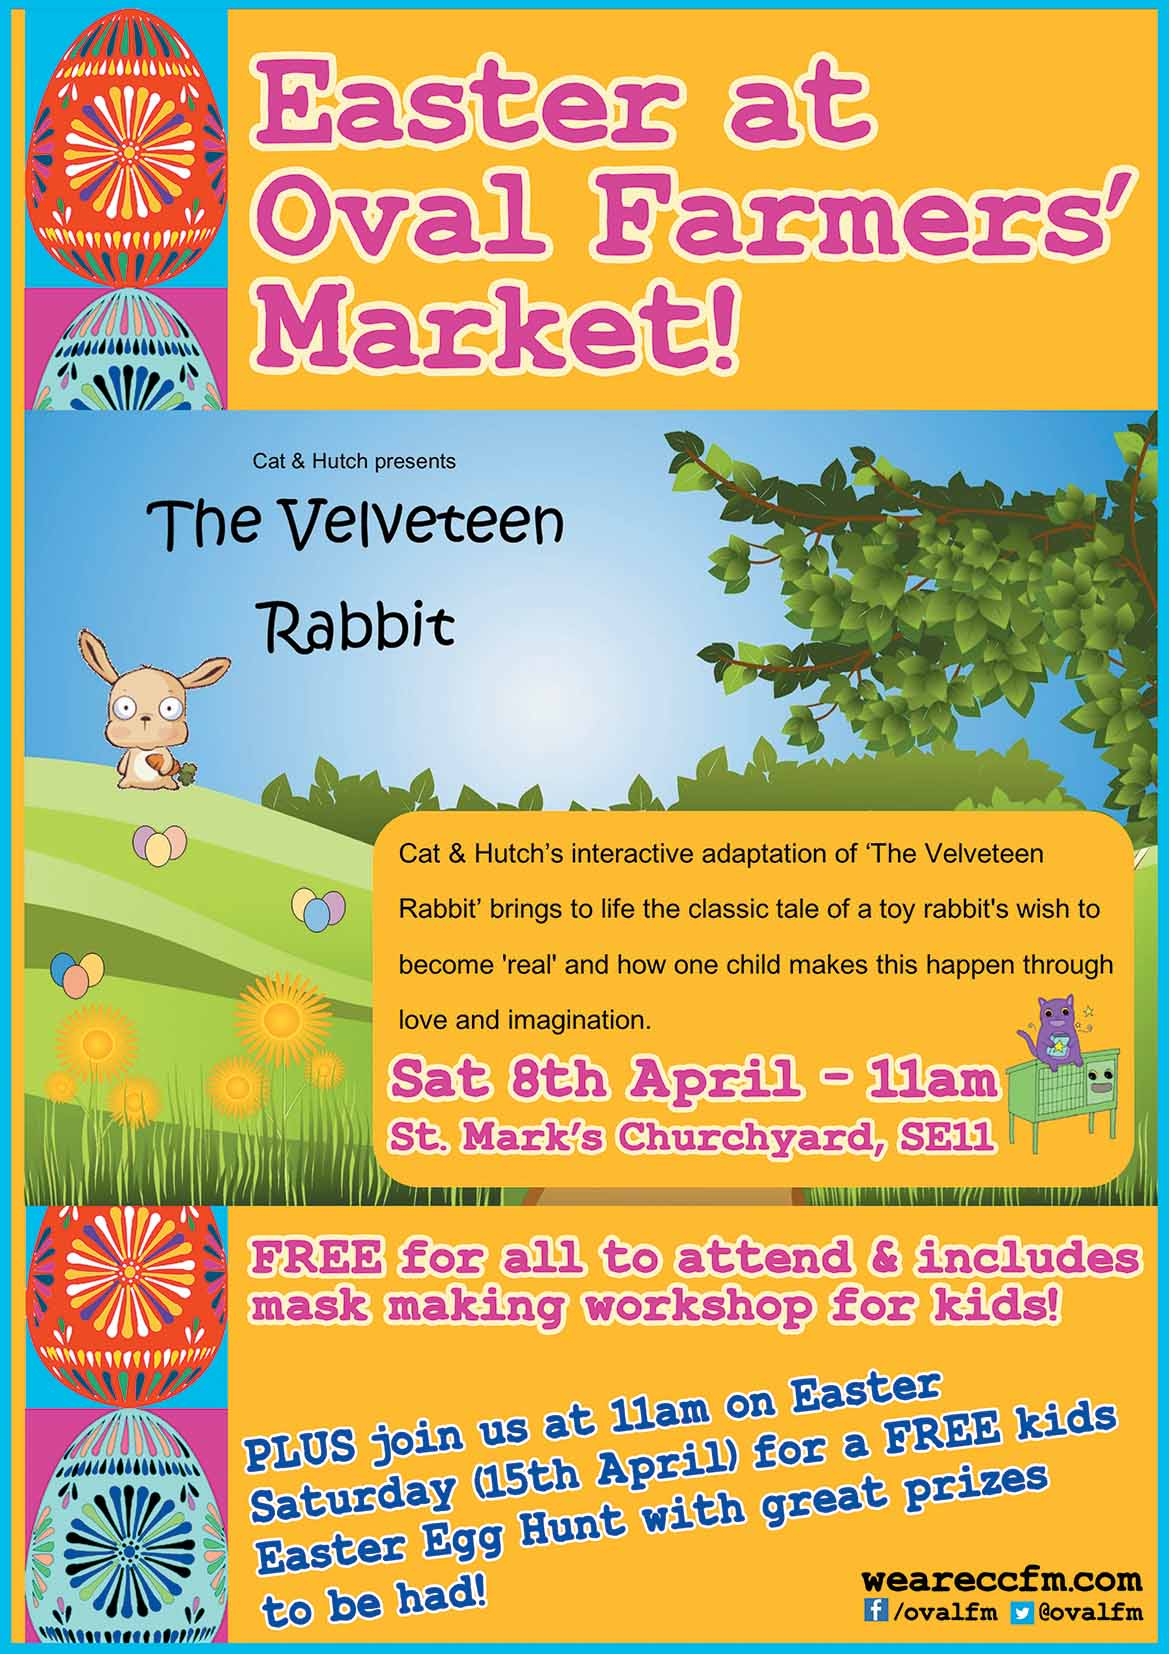 Easter fun at Oval Market